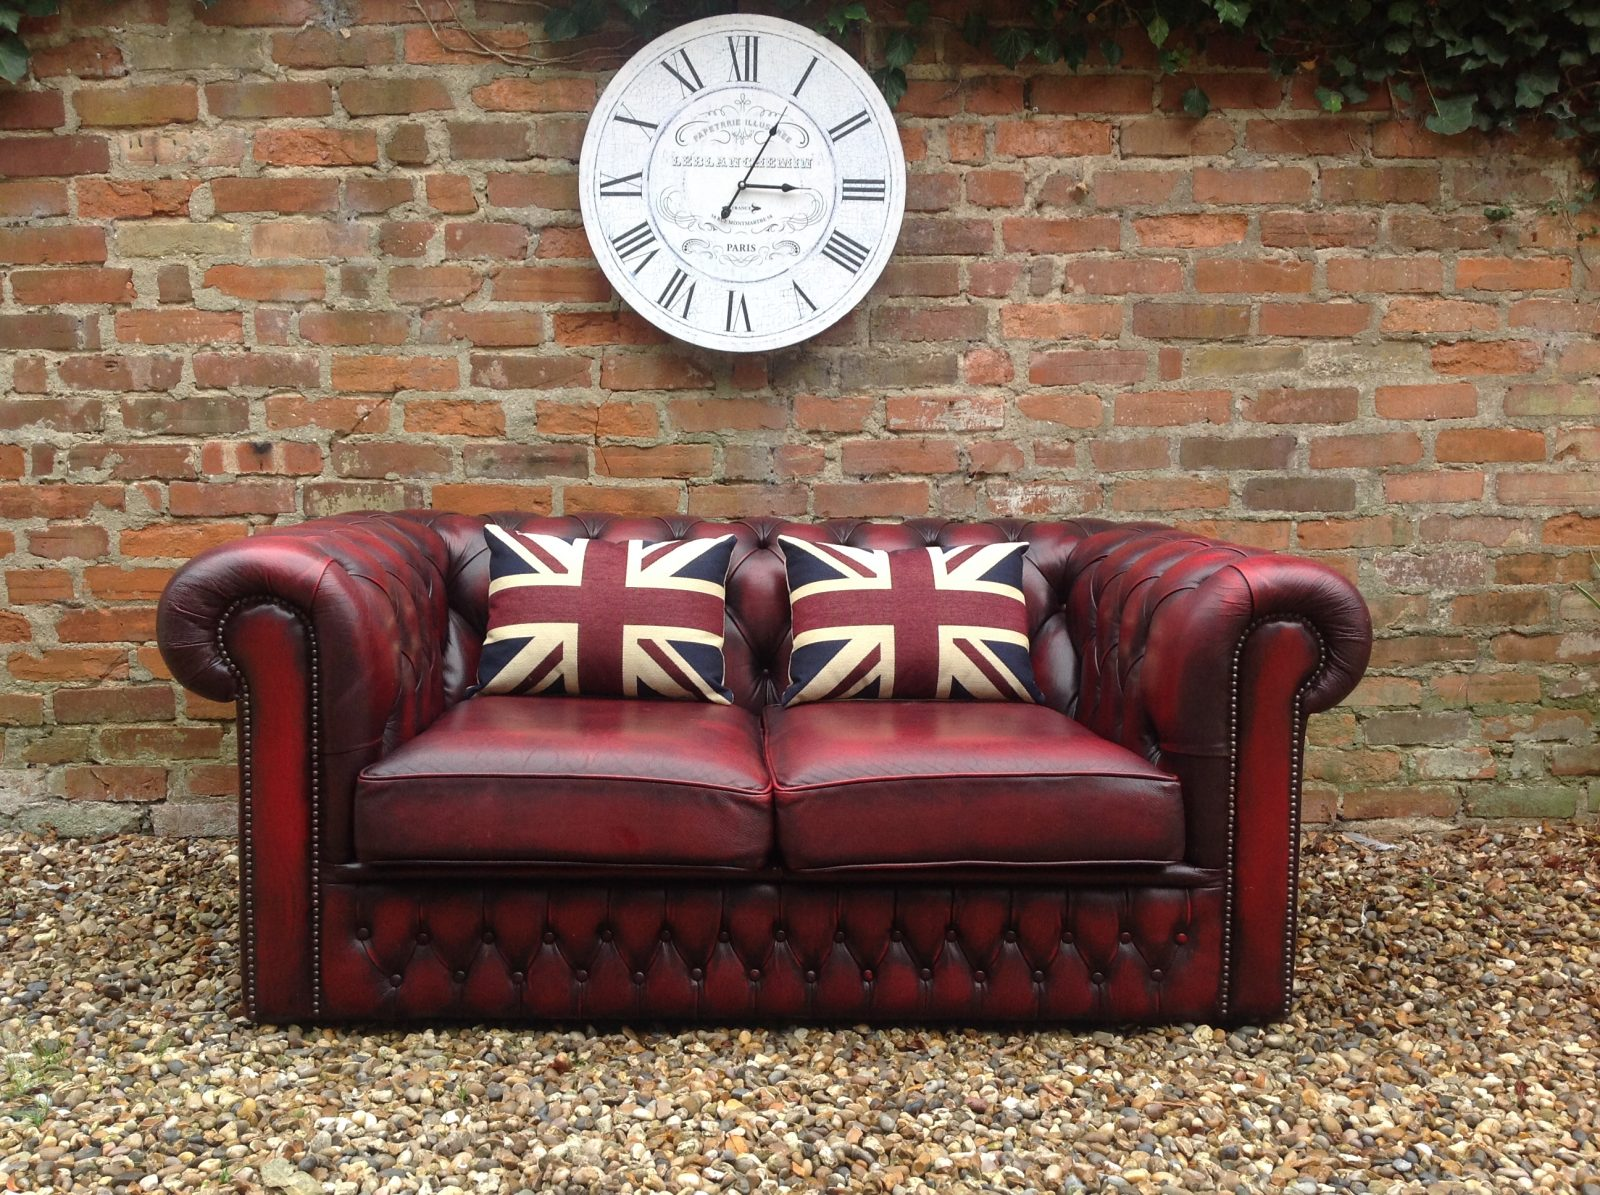 Oxblood Chesterfield Sofa By Saxon.